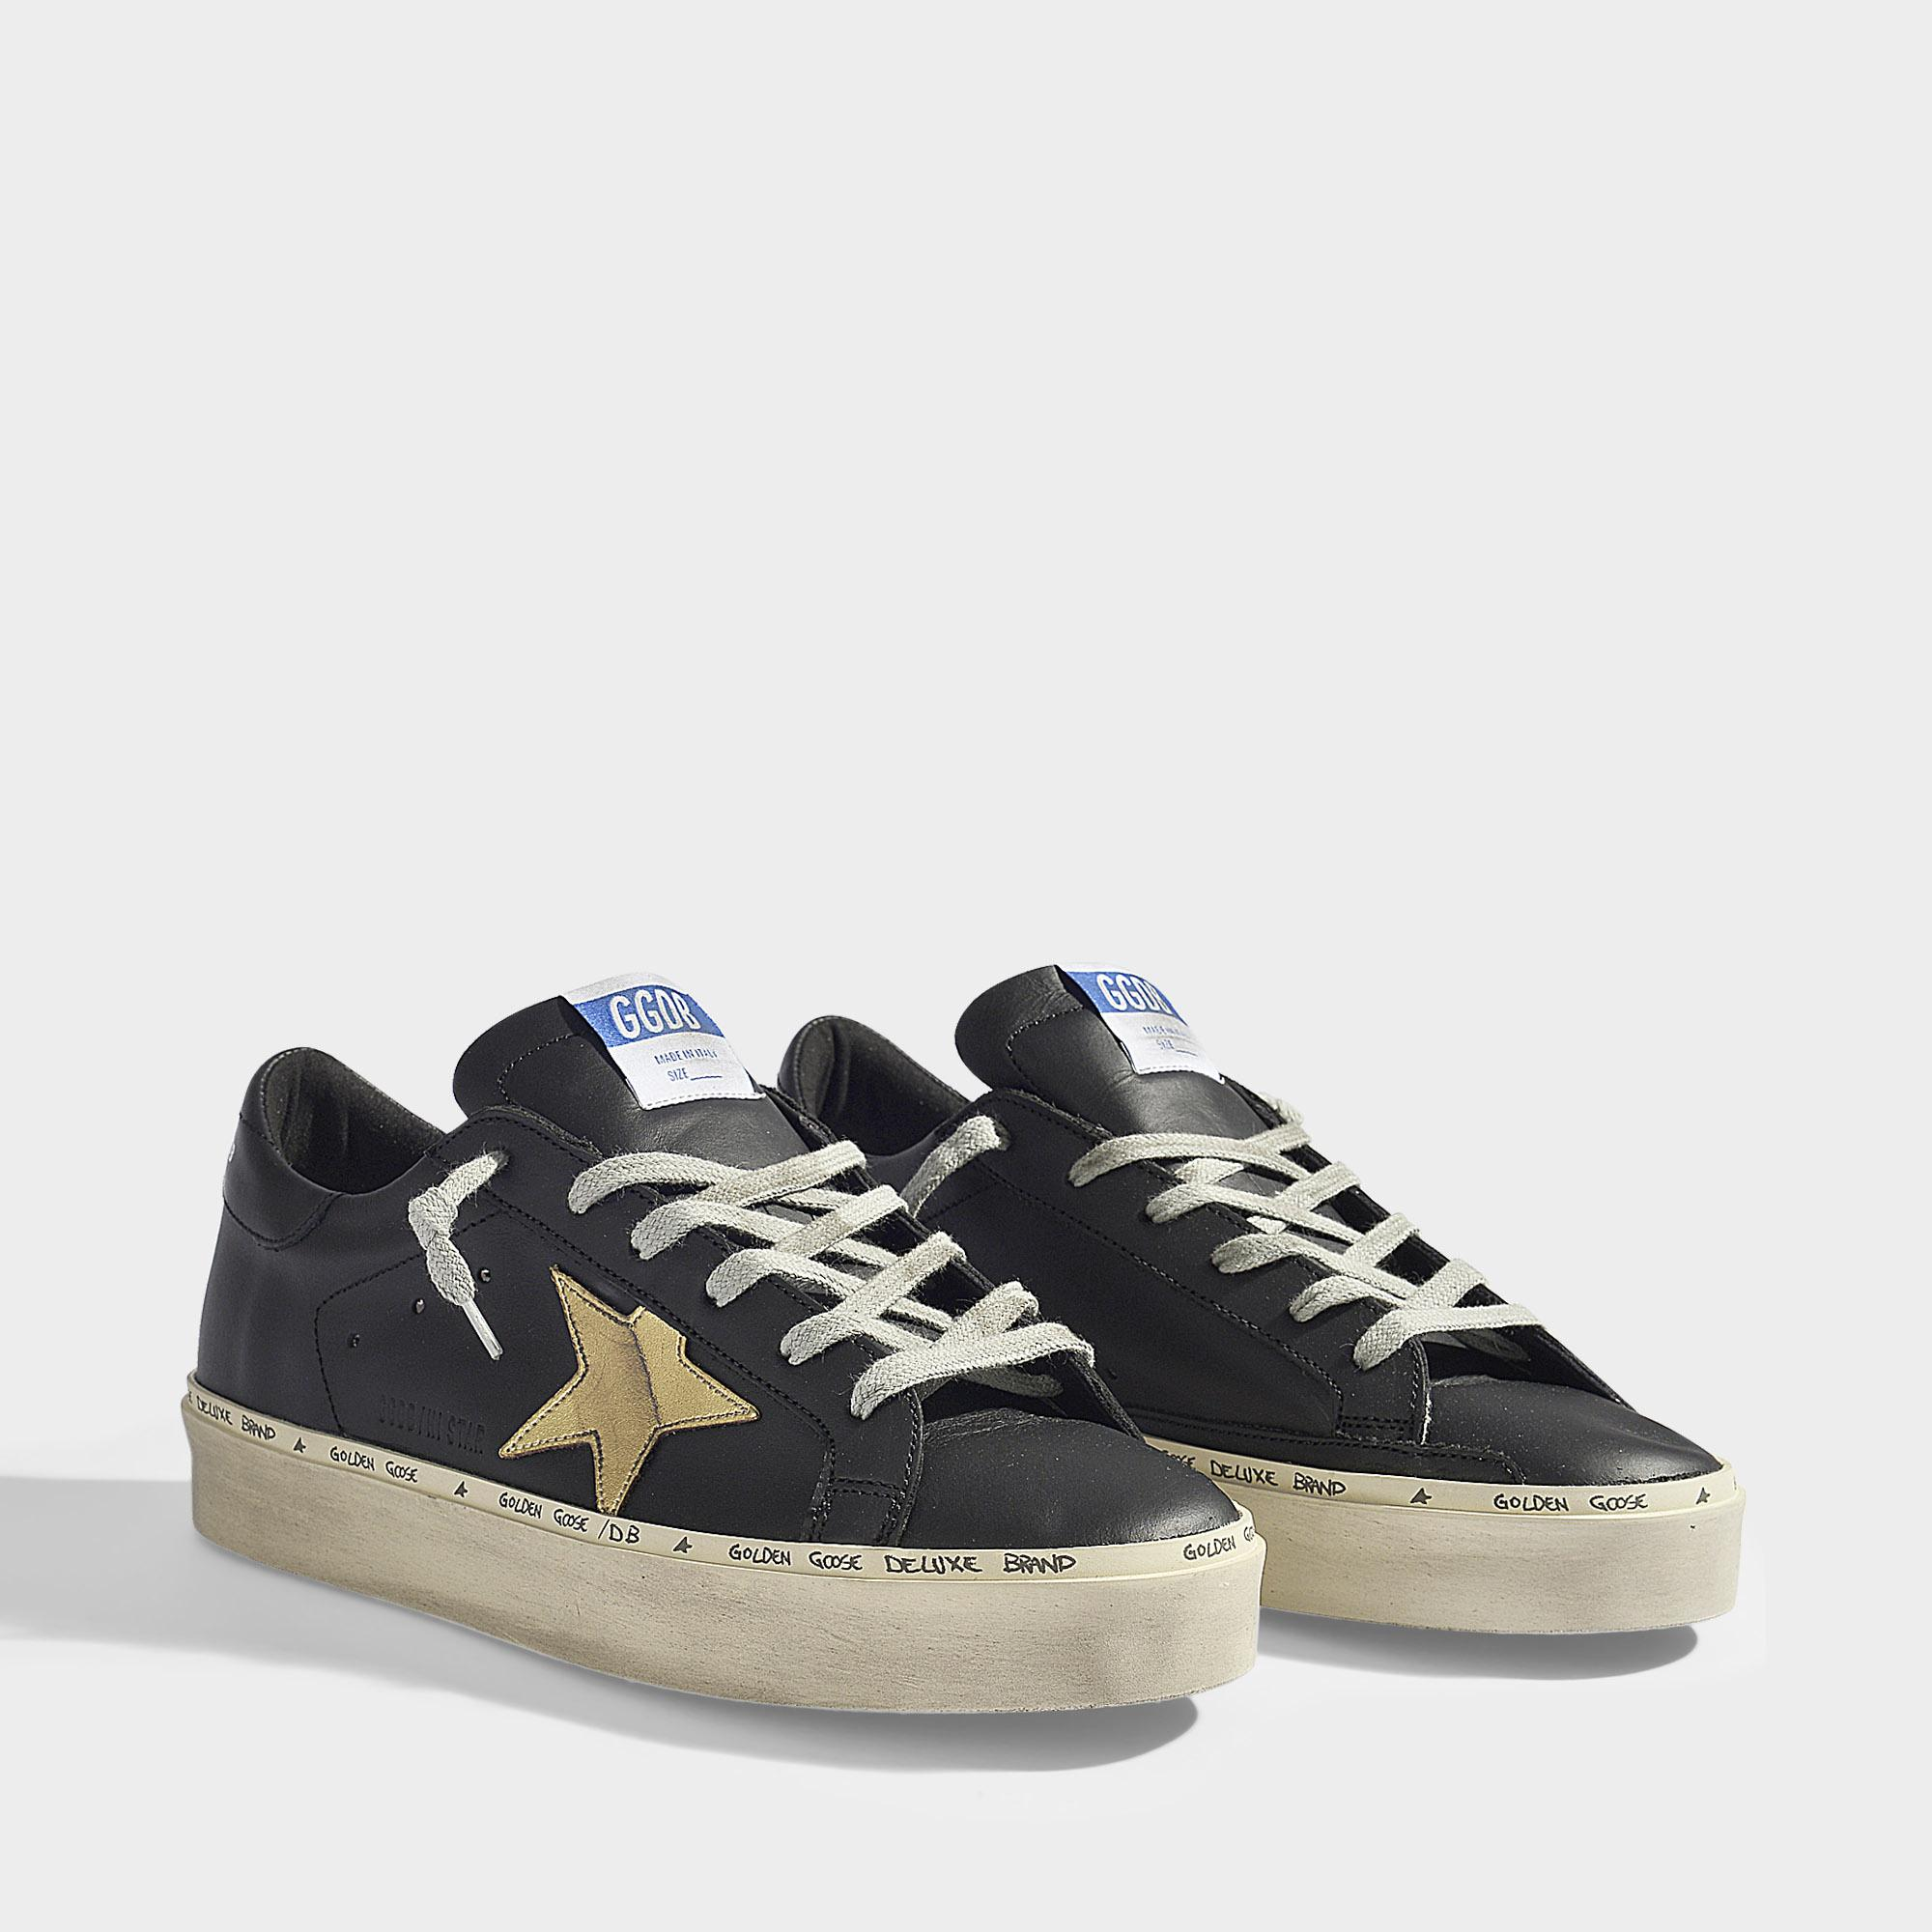 Lyst Golden And Deluxe Black Goose Brand Sneakers Hi Star Gold In HHArxqwd